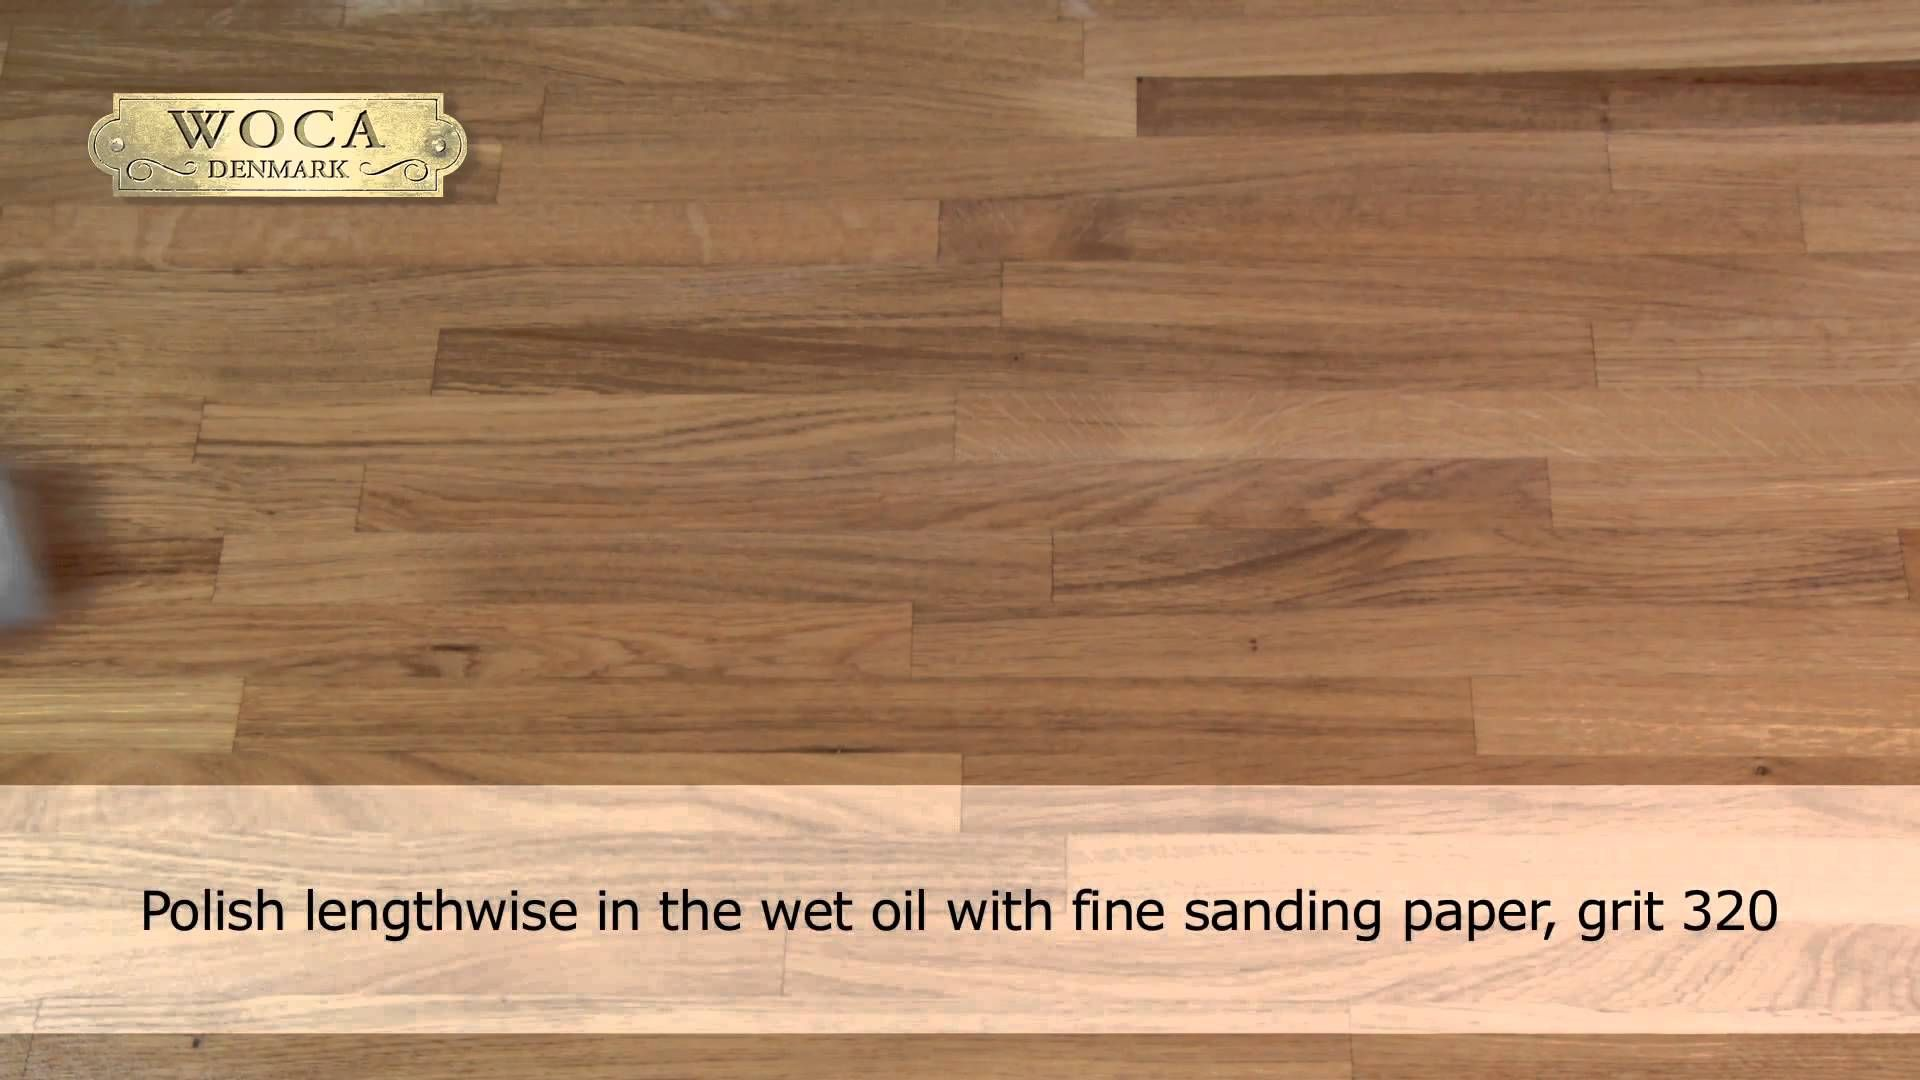 How To Apply Woca Worktop Oil For Untreated Or Previously Oiled Sanded Wood Surfaces Wood Care Wood Surface Oil Sands